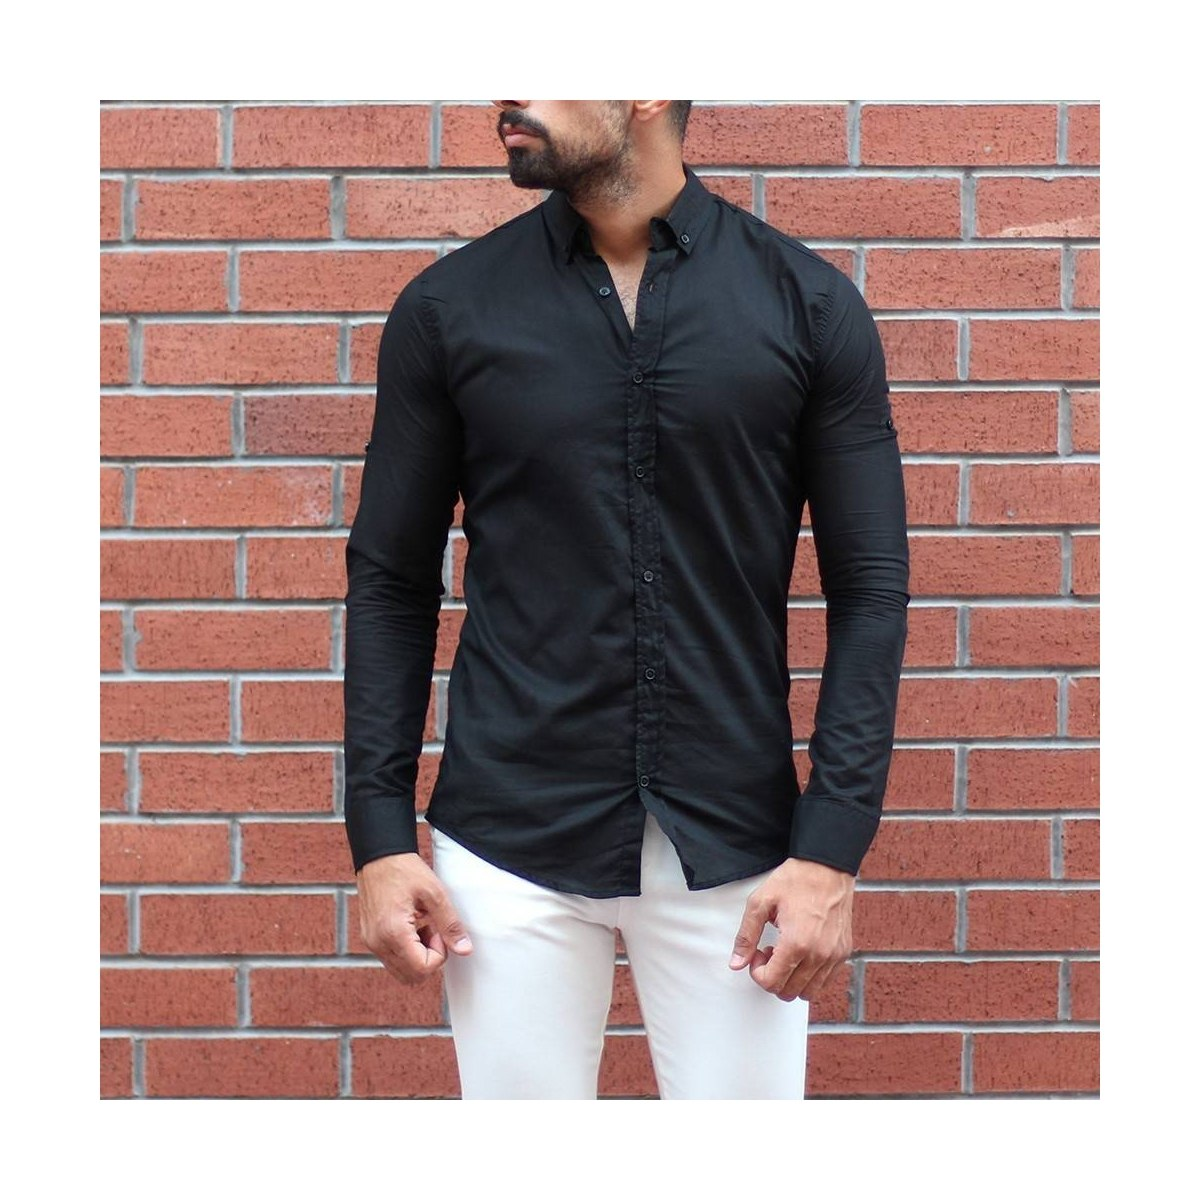 Men's Stylish Basic Shirt In Black